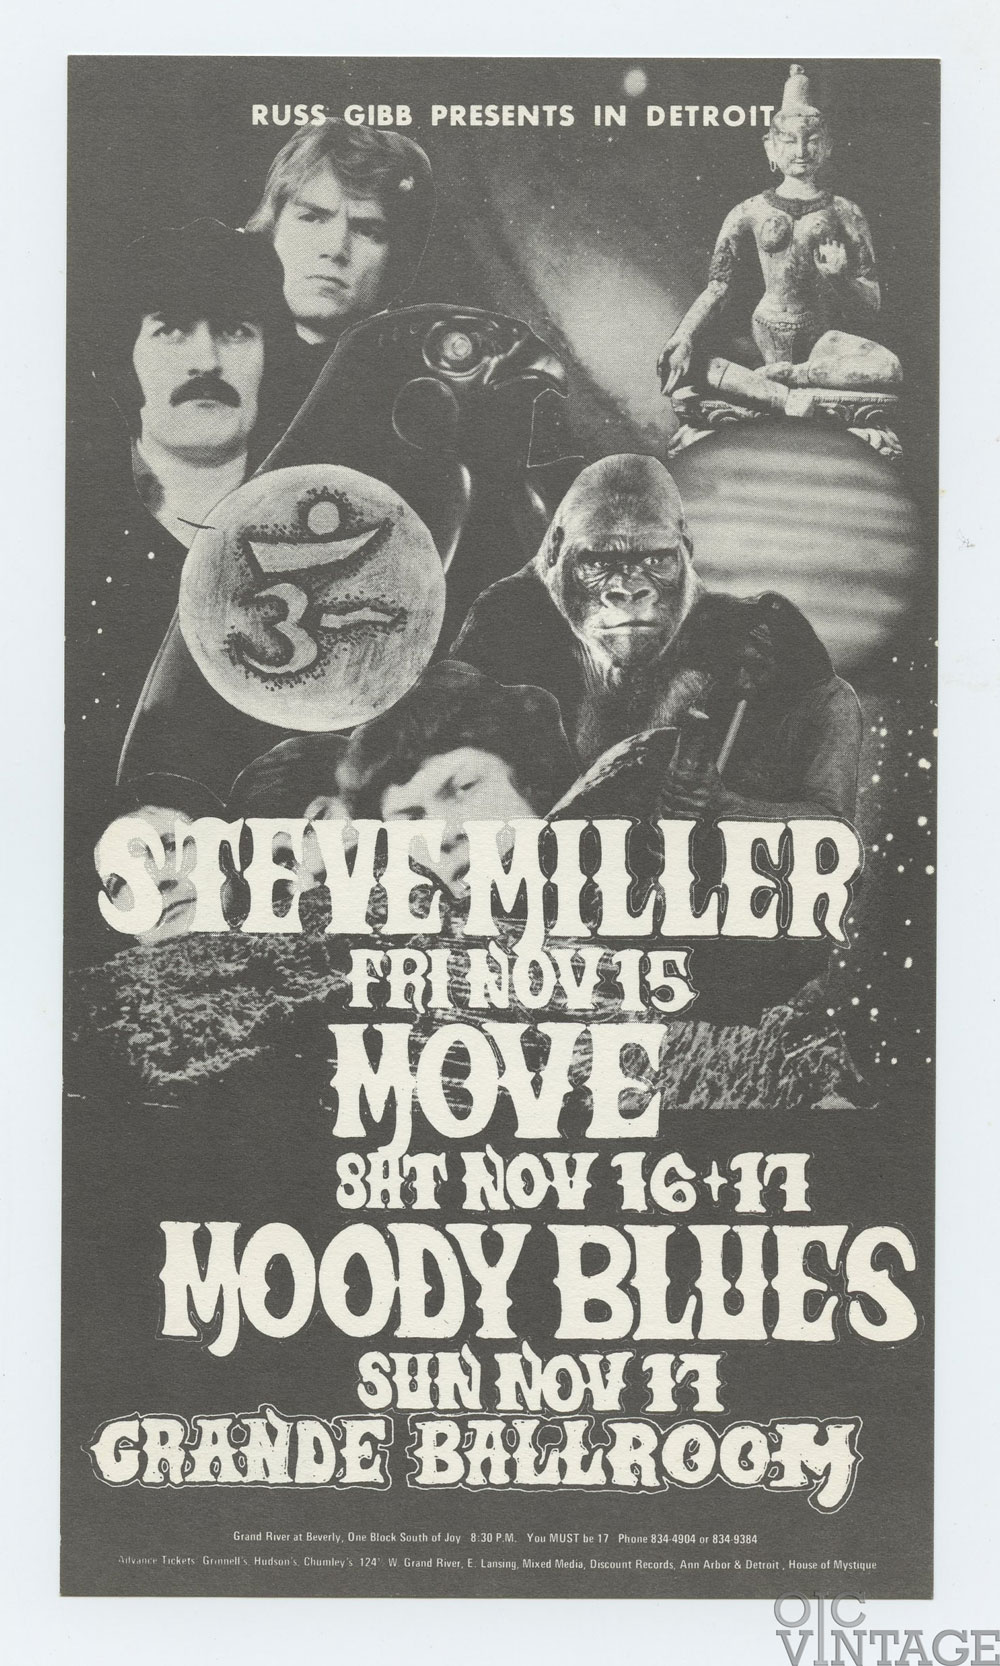 Grande Ballroom Postcard 1968 Nov 15 Steve Miller Move Moody Blues